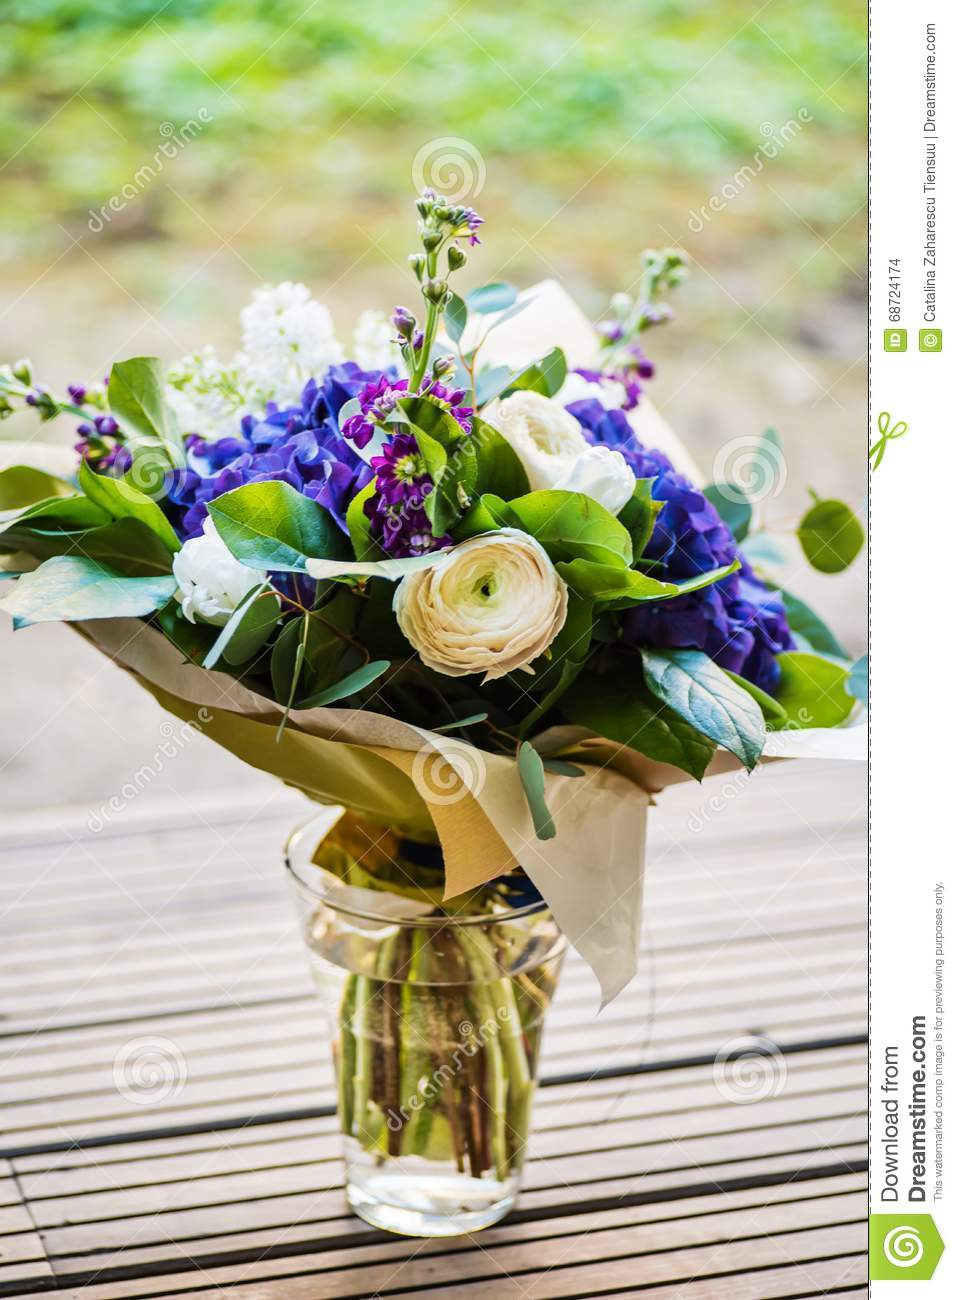 A Large Bouquet Of White And Blue Spring Flowers Stock Photo Image